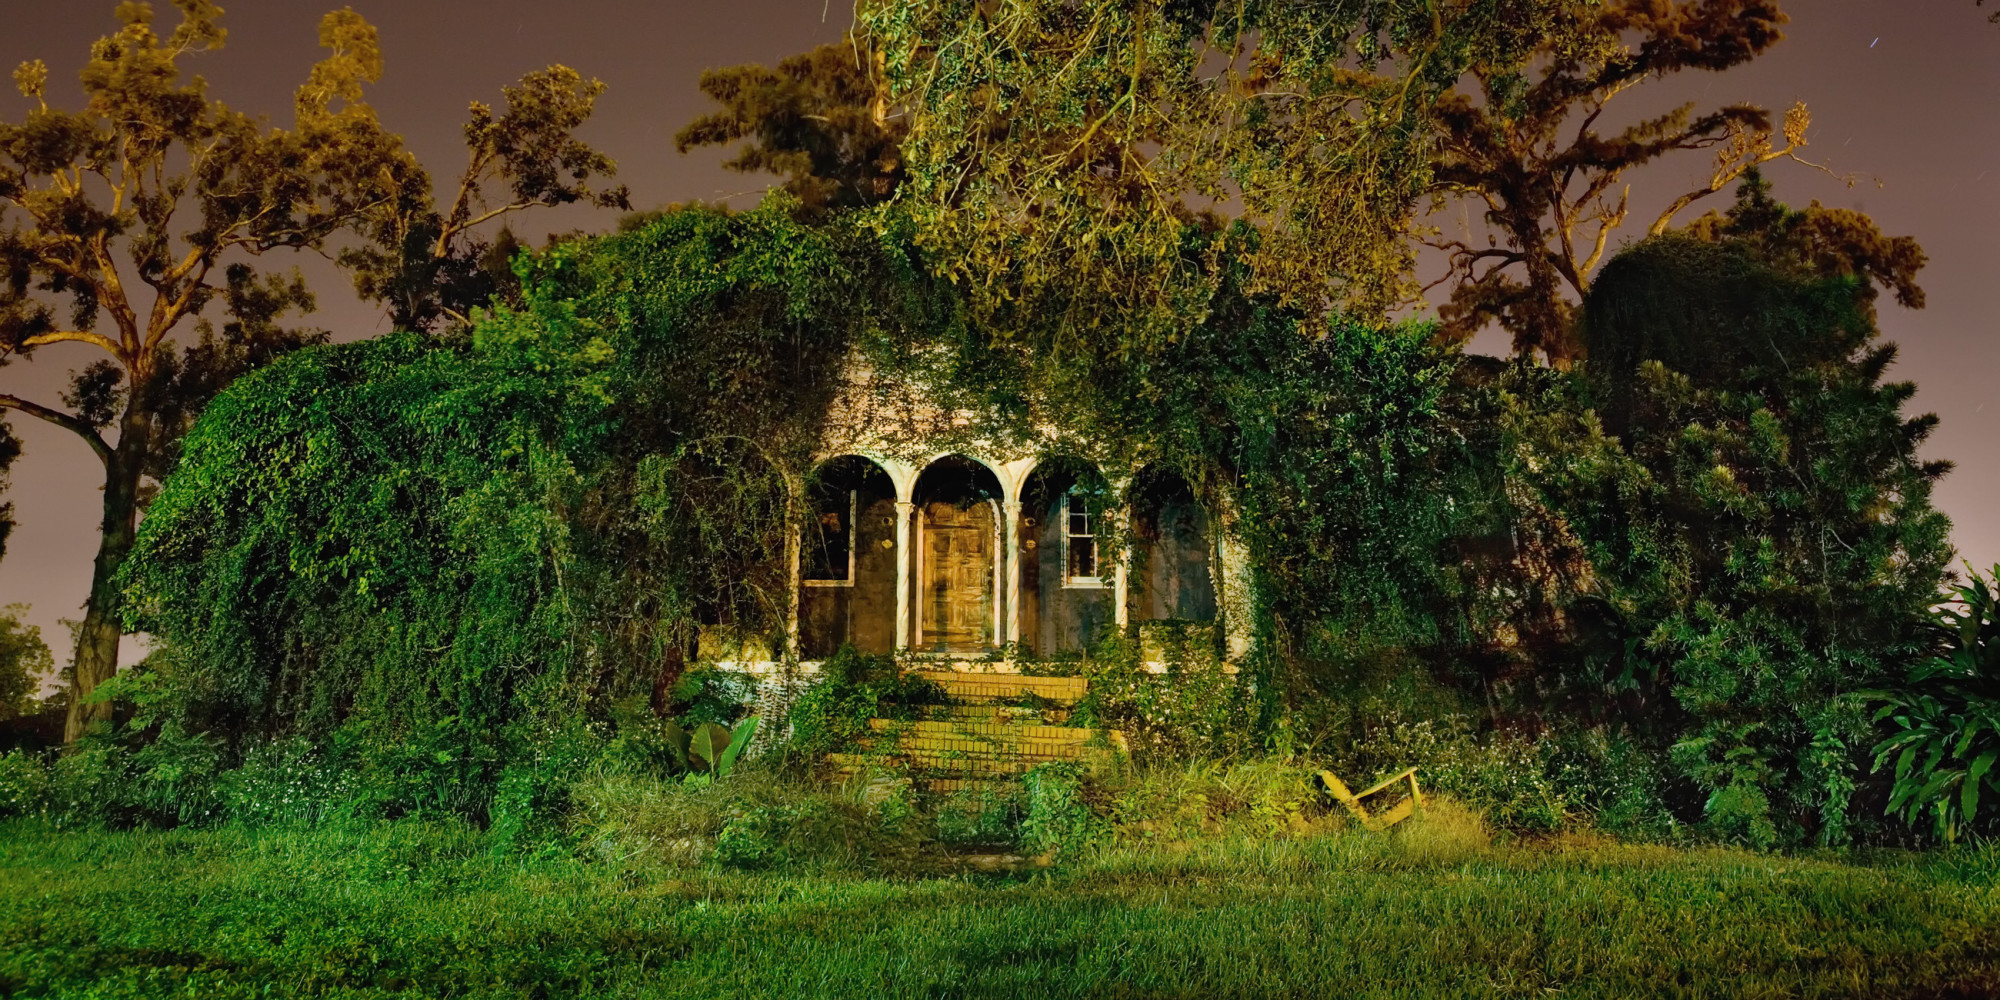 Haunting Photos Of New Orleans Houses Reveal Louisiana's Architectural Ghosts